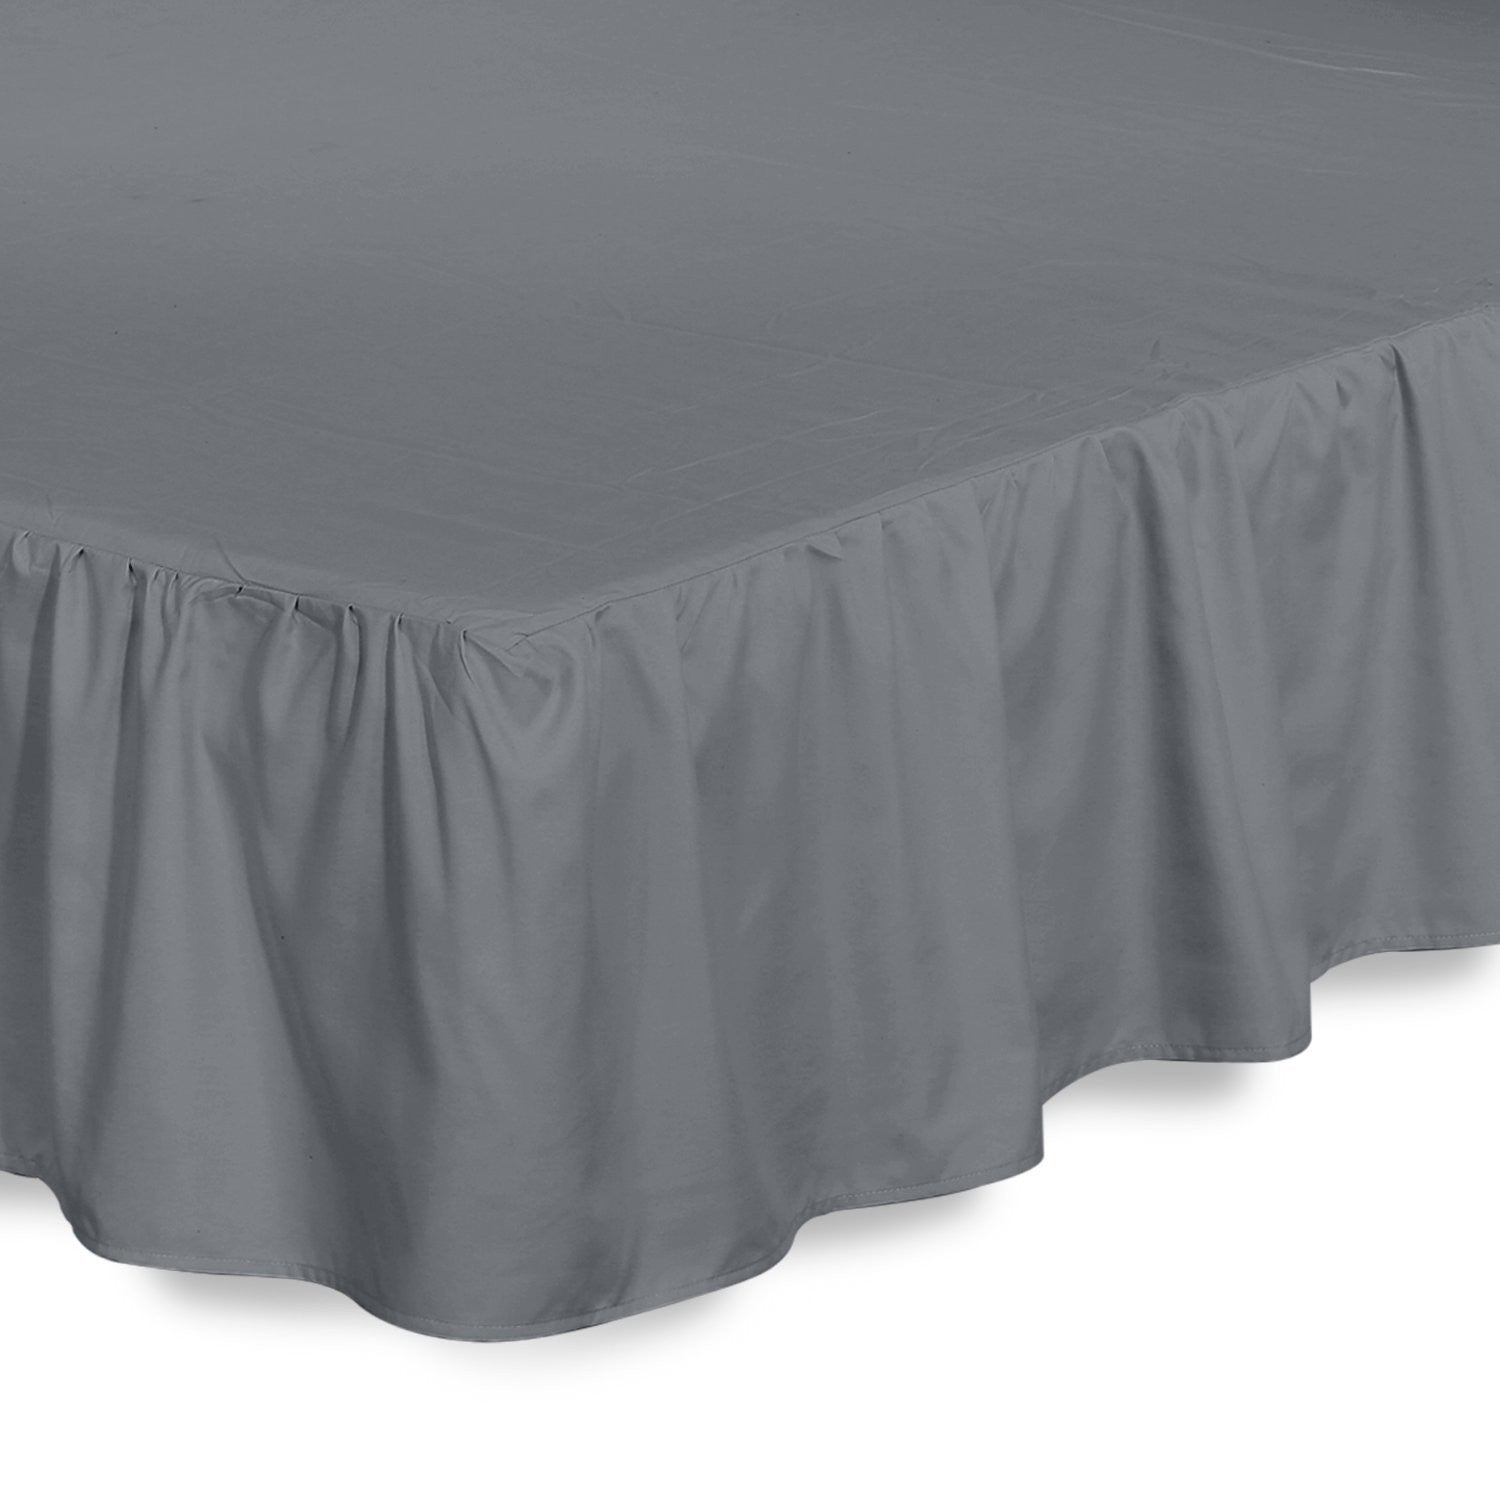 Ruffle Bed Skirt (Grey)